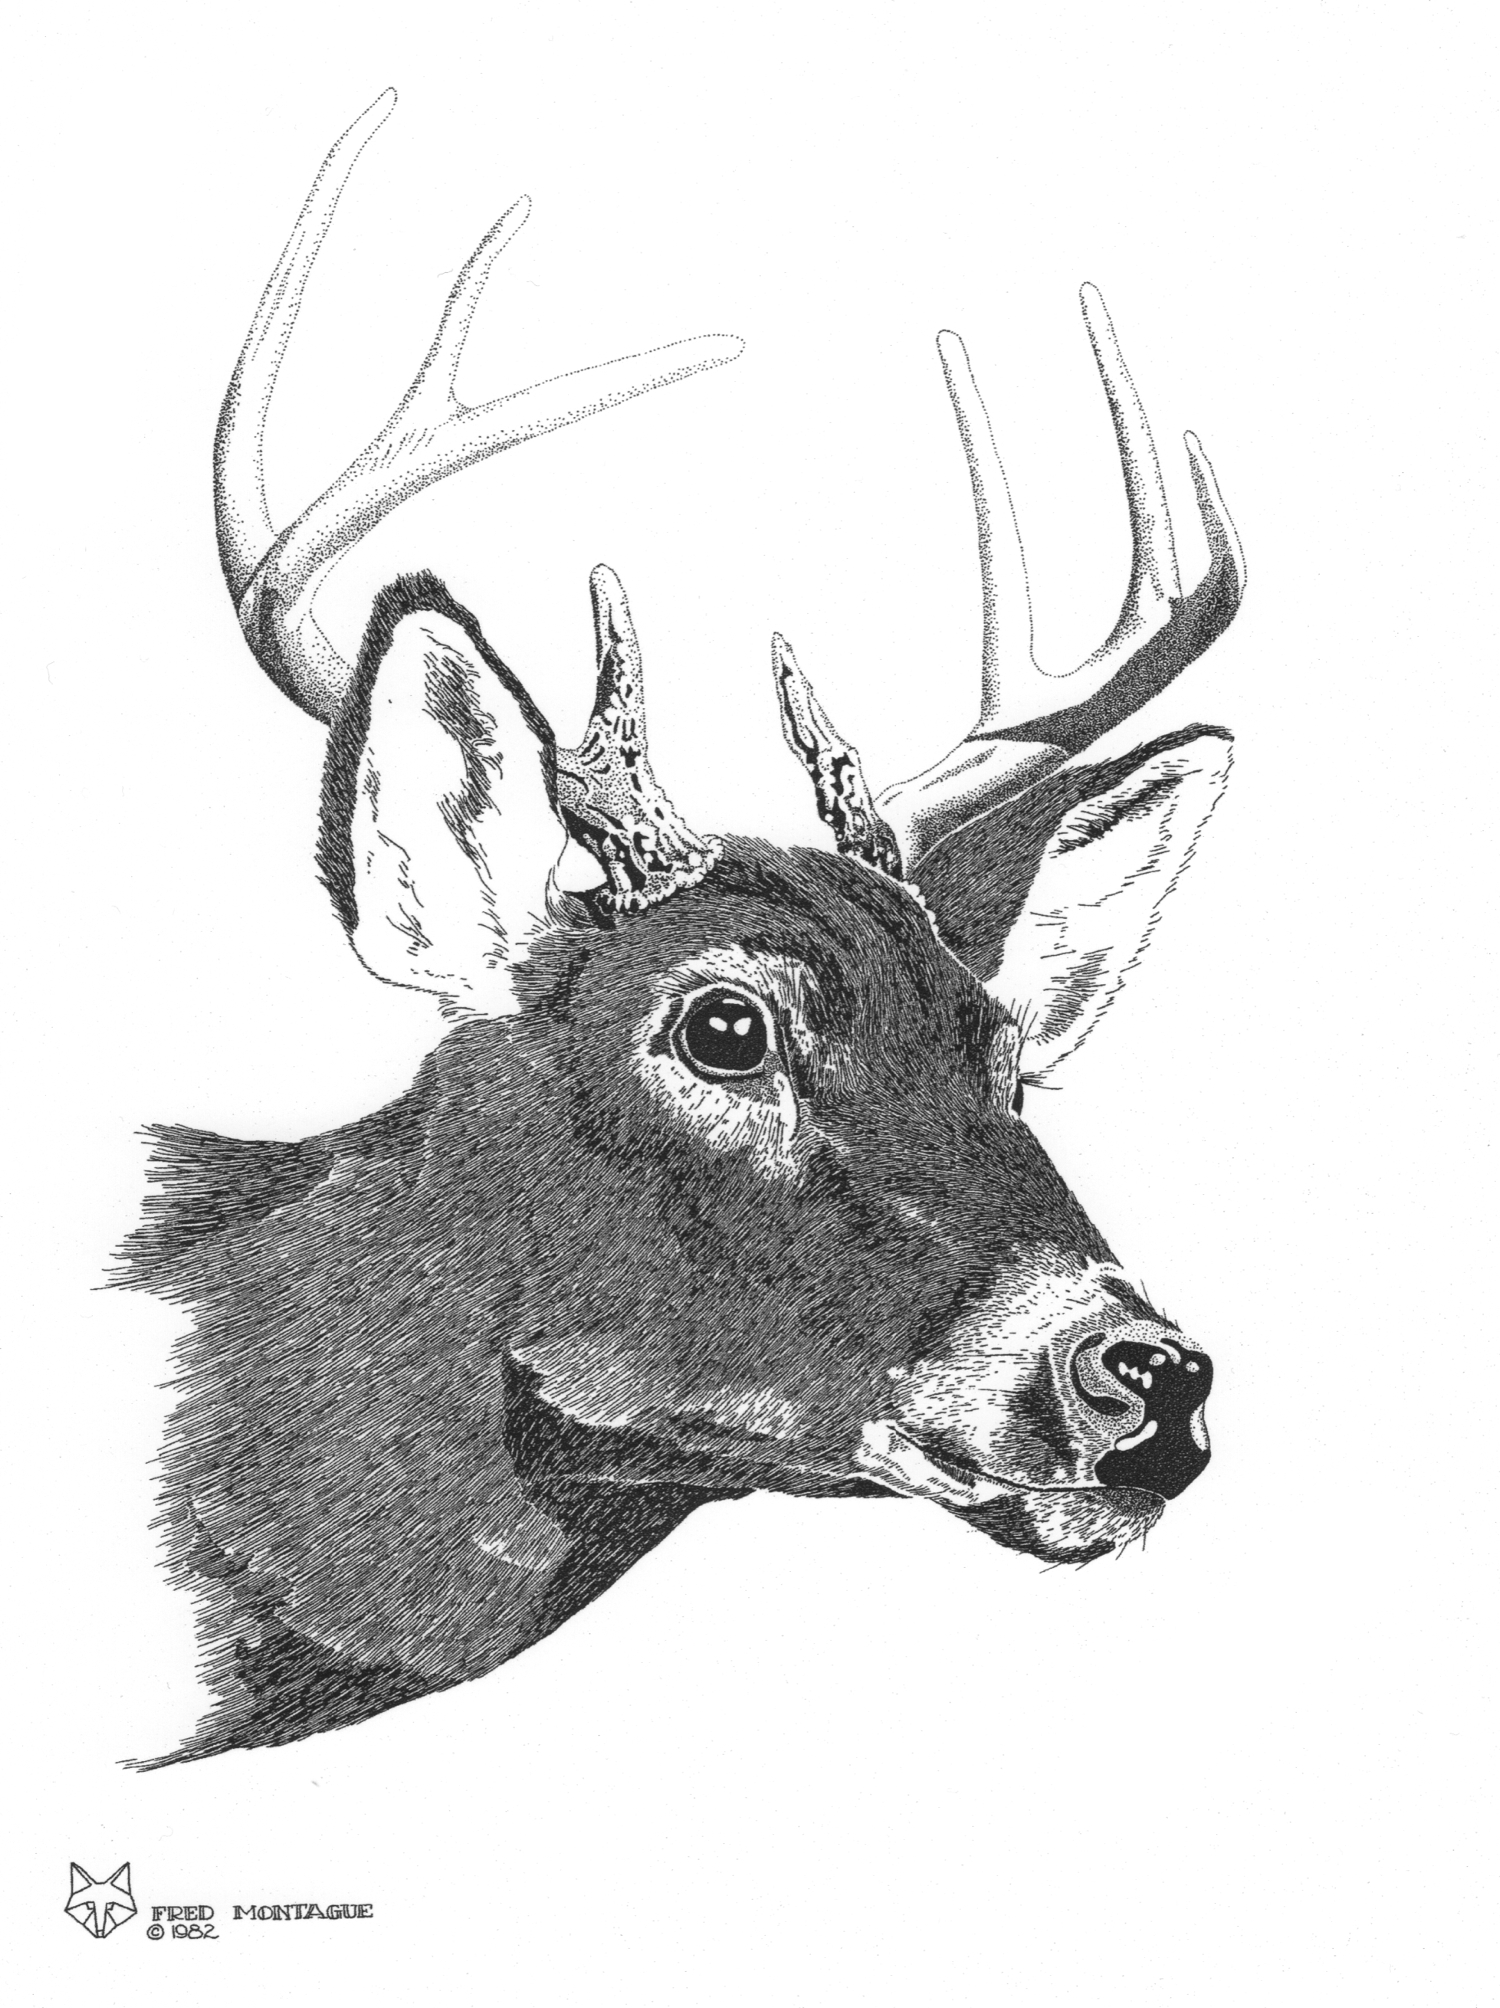 Whitetail Buck© Fred Montague  $65 • Photolithograph • image 14 x 17 matted 20 x 24  Edition size: 200 • status: available